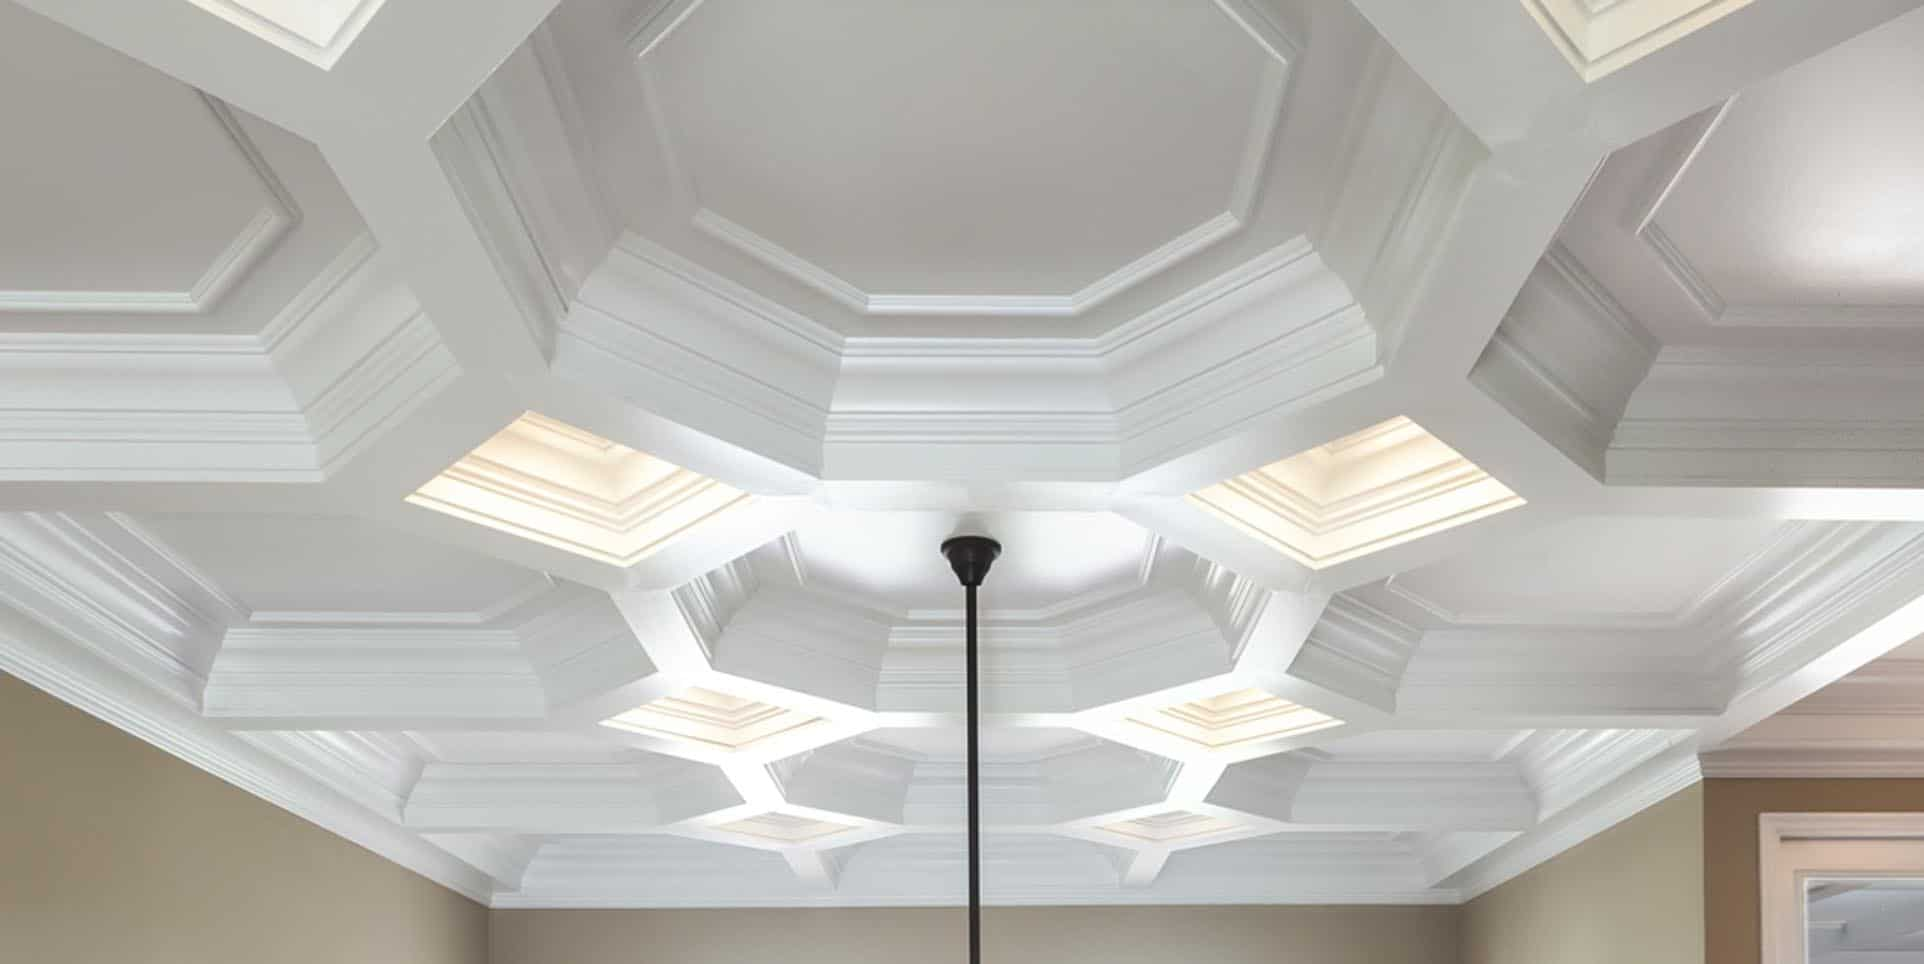 coffered ceiling, coffered ceilings, ceiling treatment, ceiling design, ceiling panel, faux beams